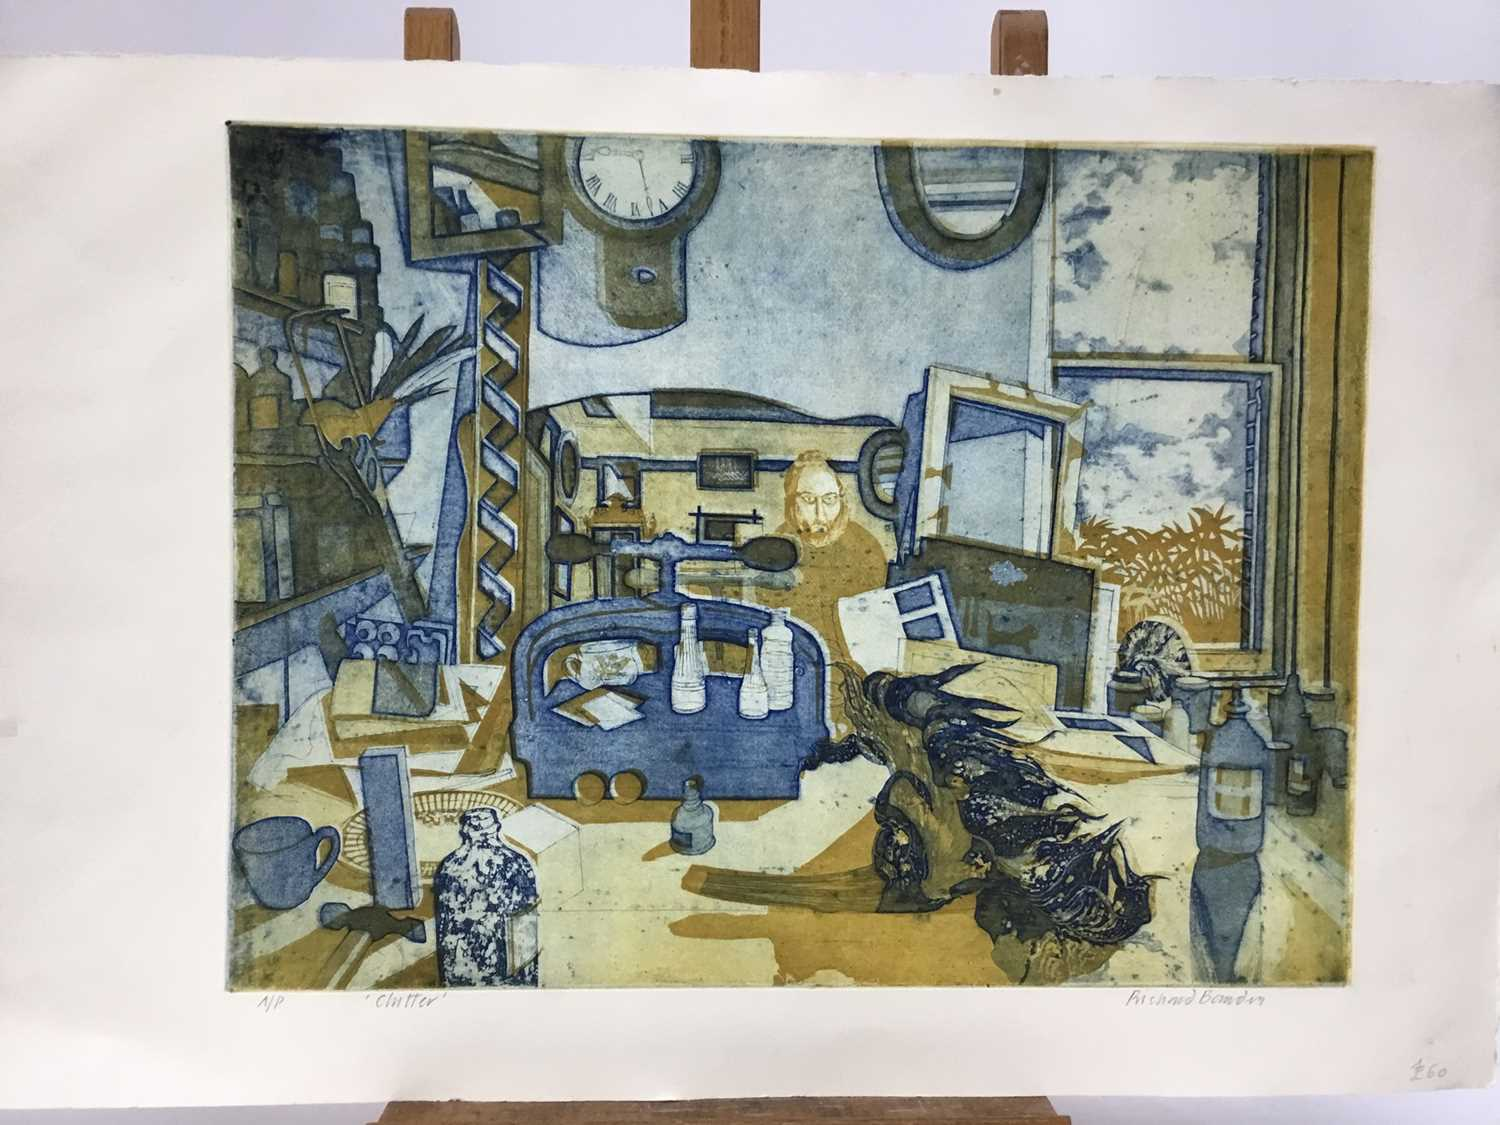 Richard Bawden (b. 1936) etching and aquatint in colours, Clutter, signed, artists proof, unframed. - Image 4 of 4